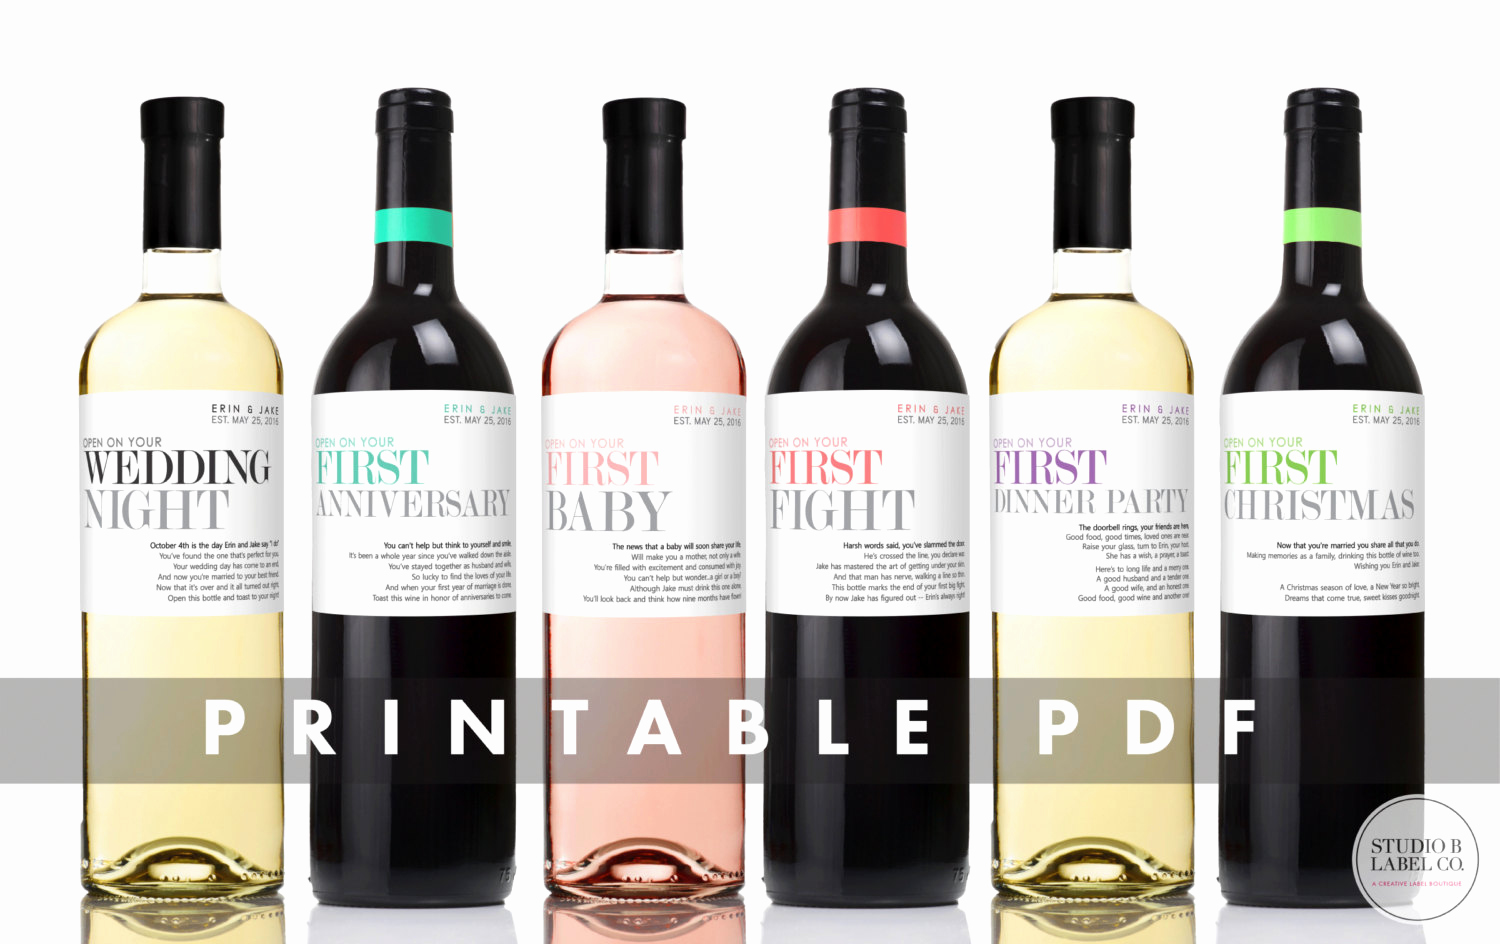 Free Printable Wine Labels Awesome Printable Wedding Wine Labels Milestone Stickers Unique